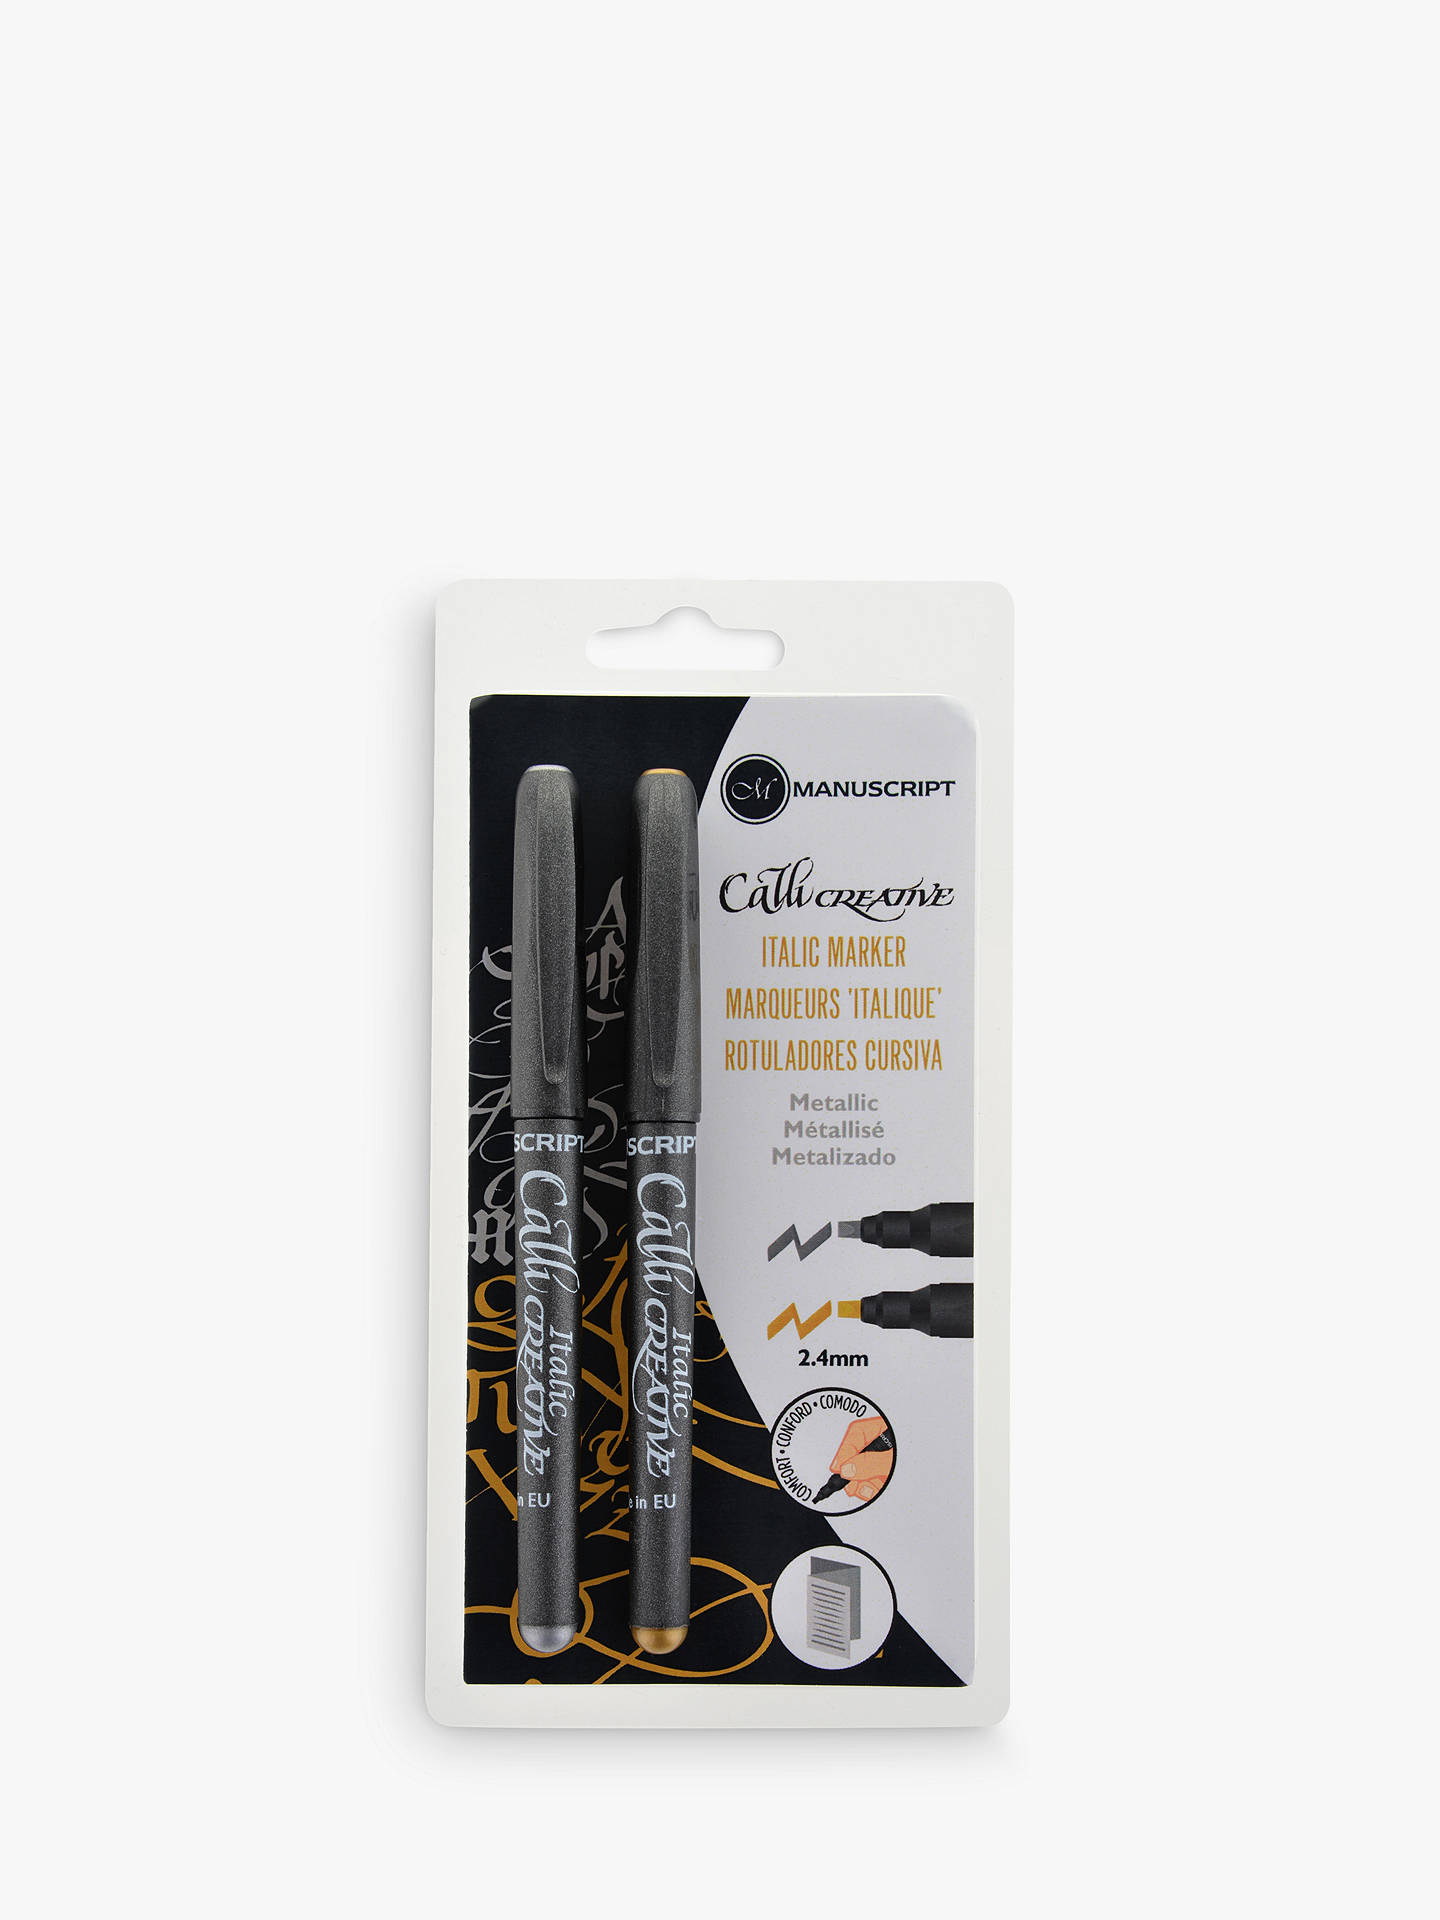 Buy Manuscript Calligraphy Metallic Callicreative Markers, Gold / Silver Online at johnlewis.com